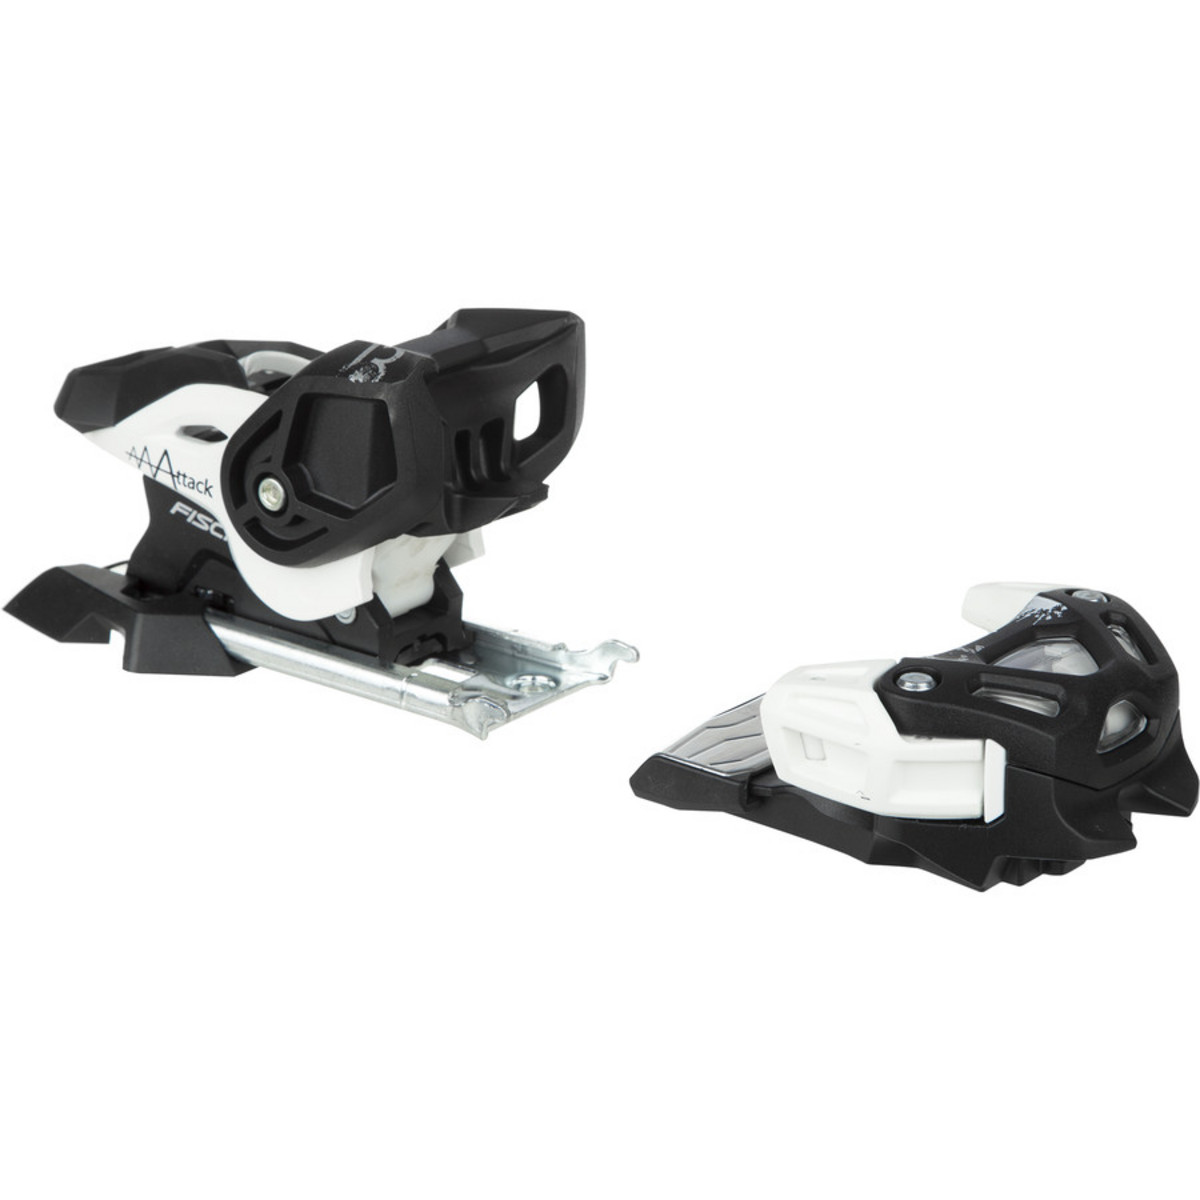 Fischer Attack 13 Ski Bindings